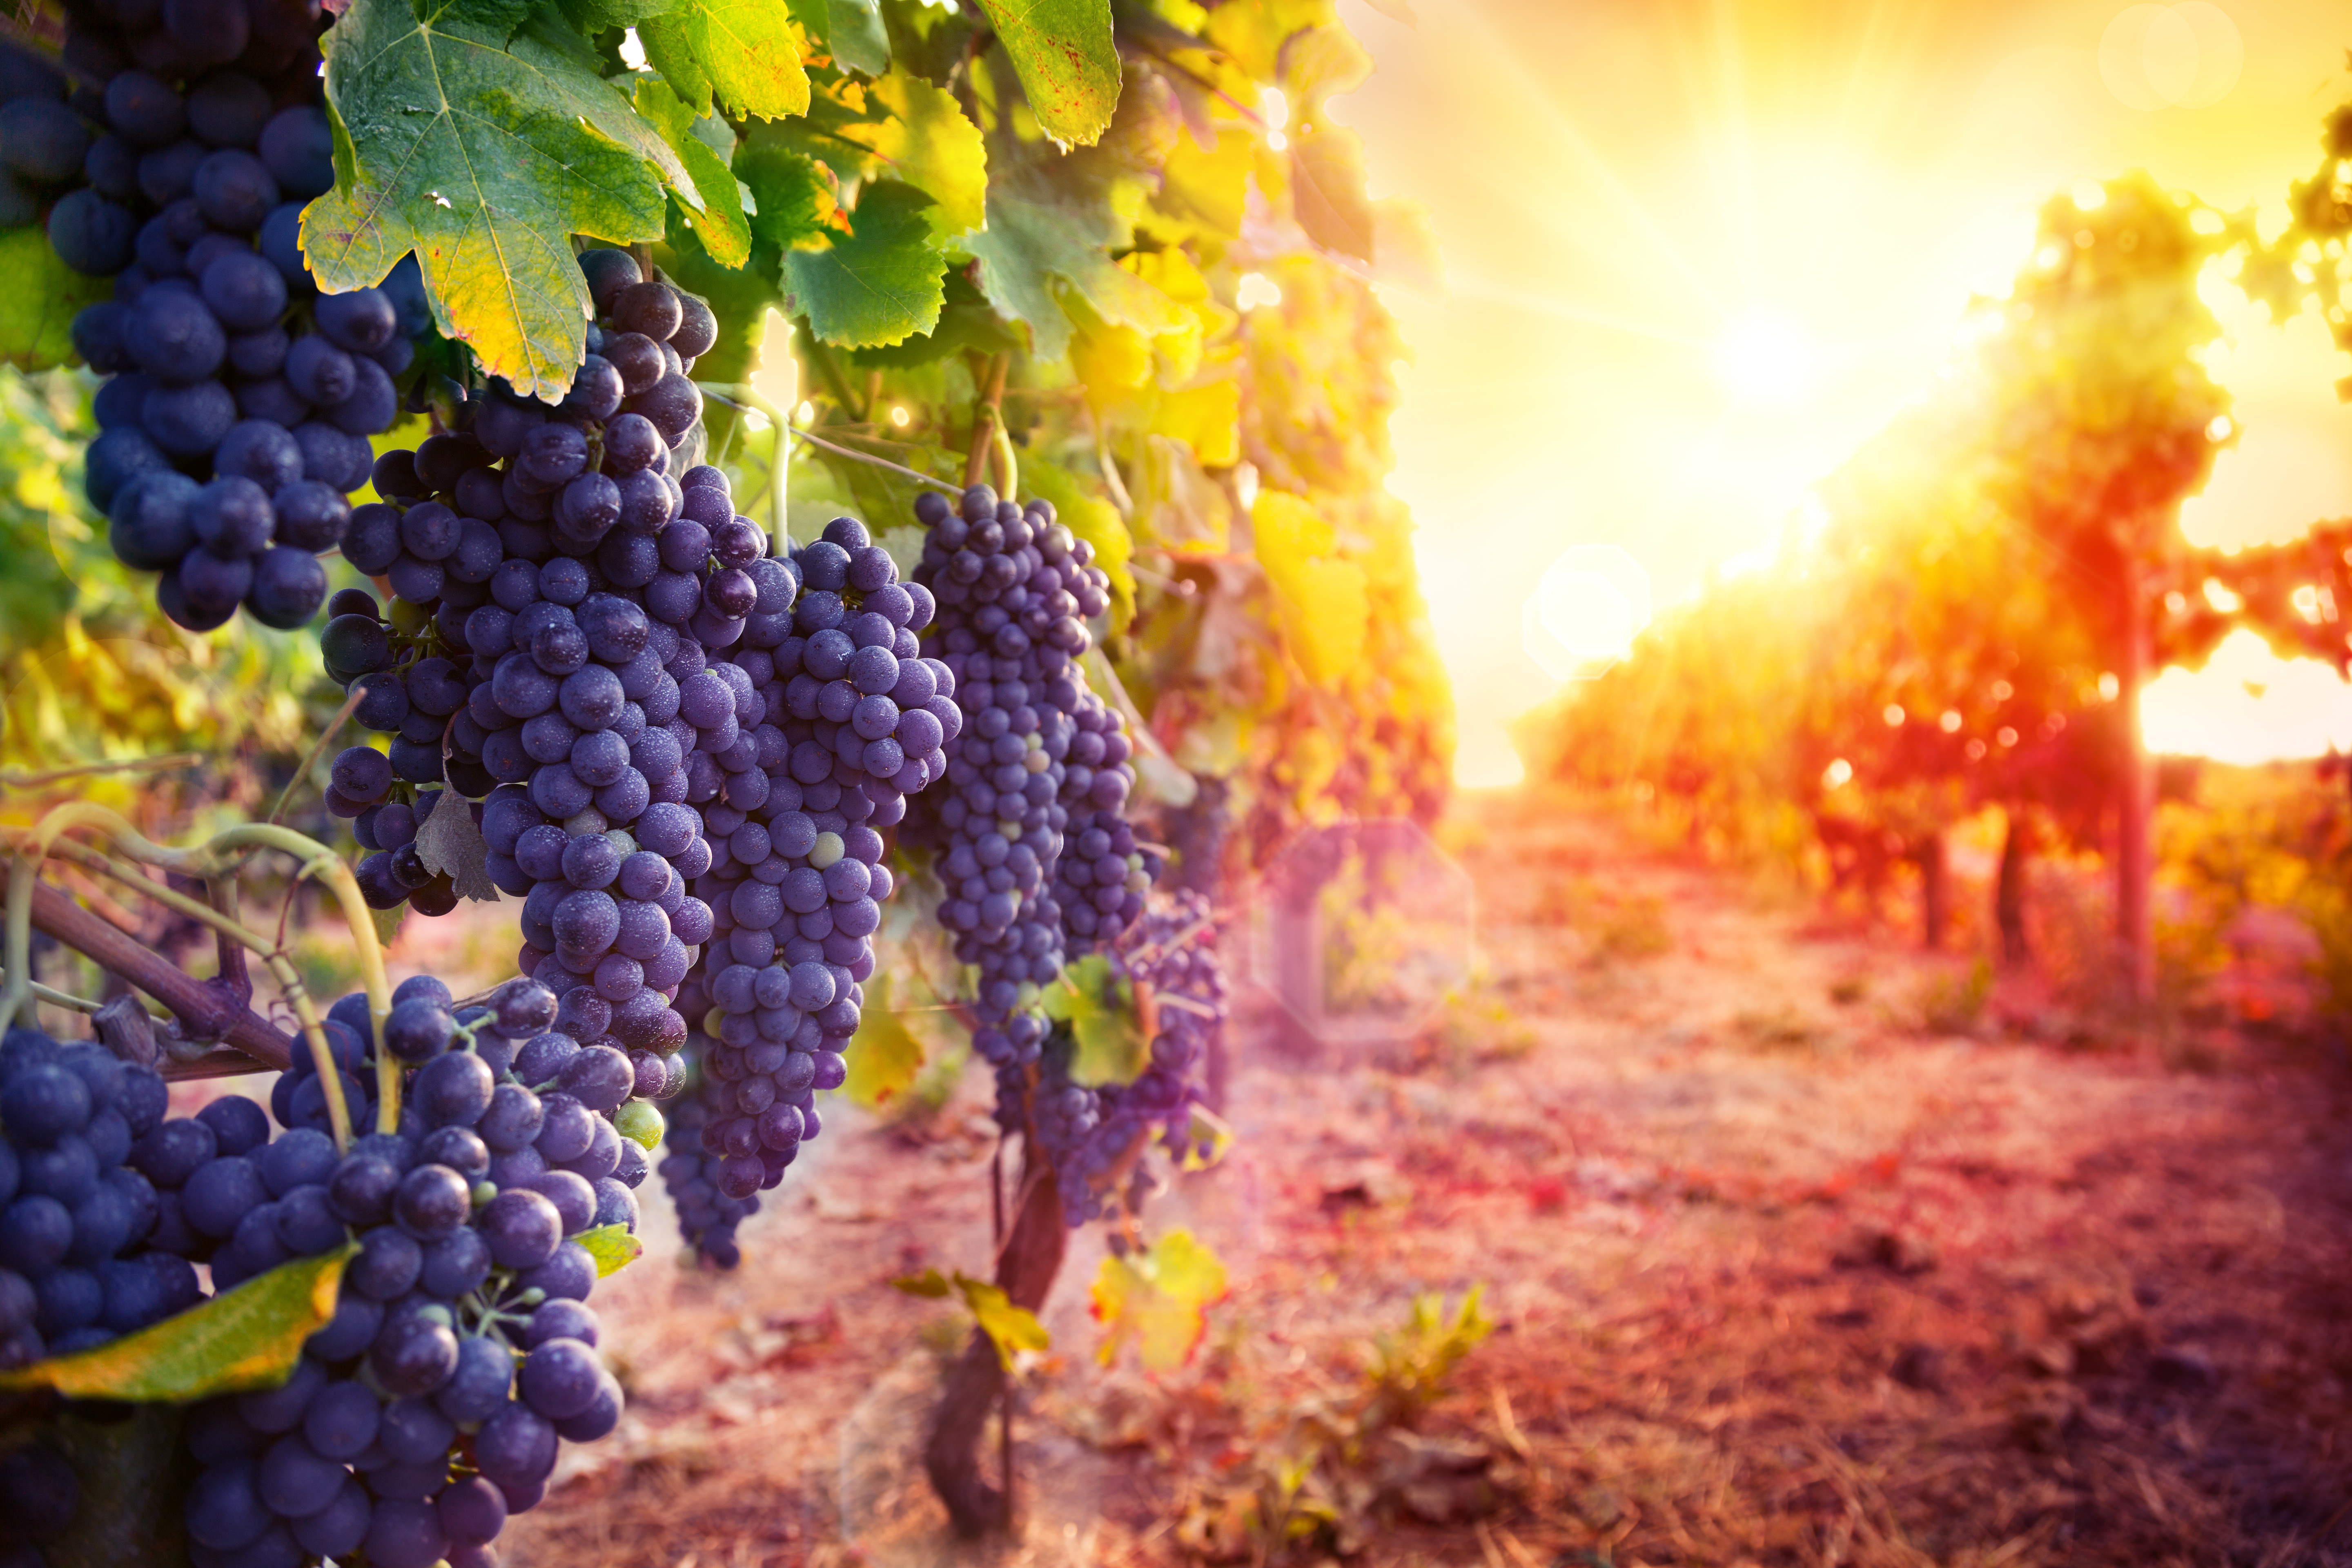 For healthy wine consumption, look to the grape